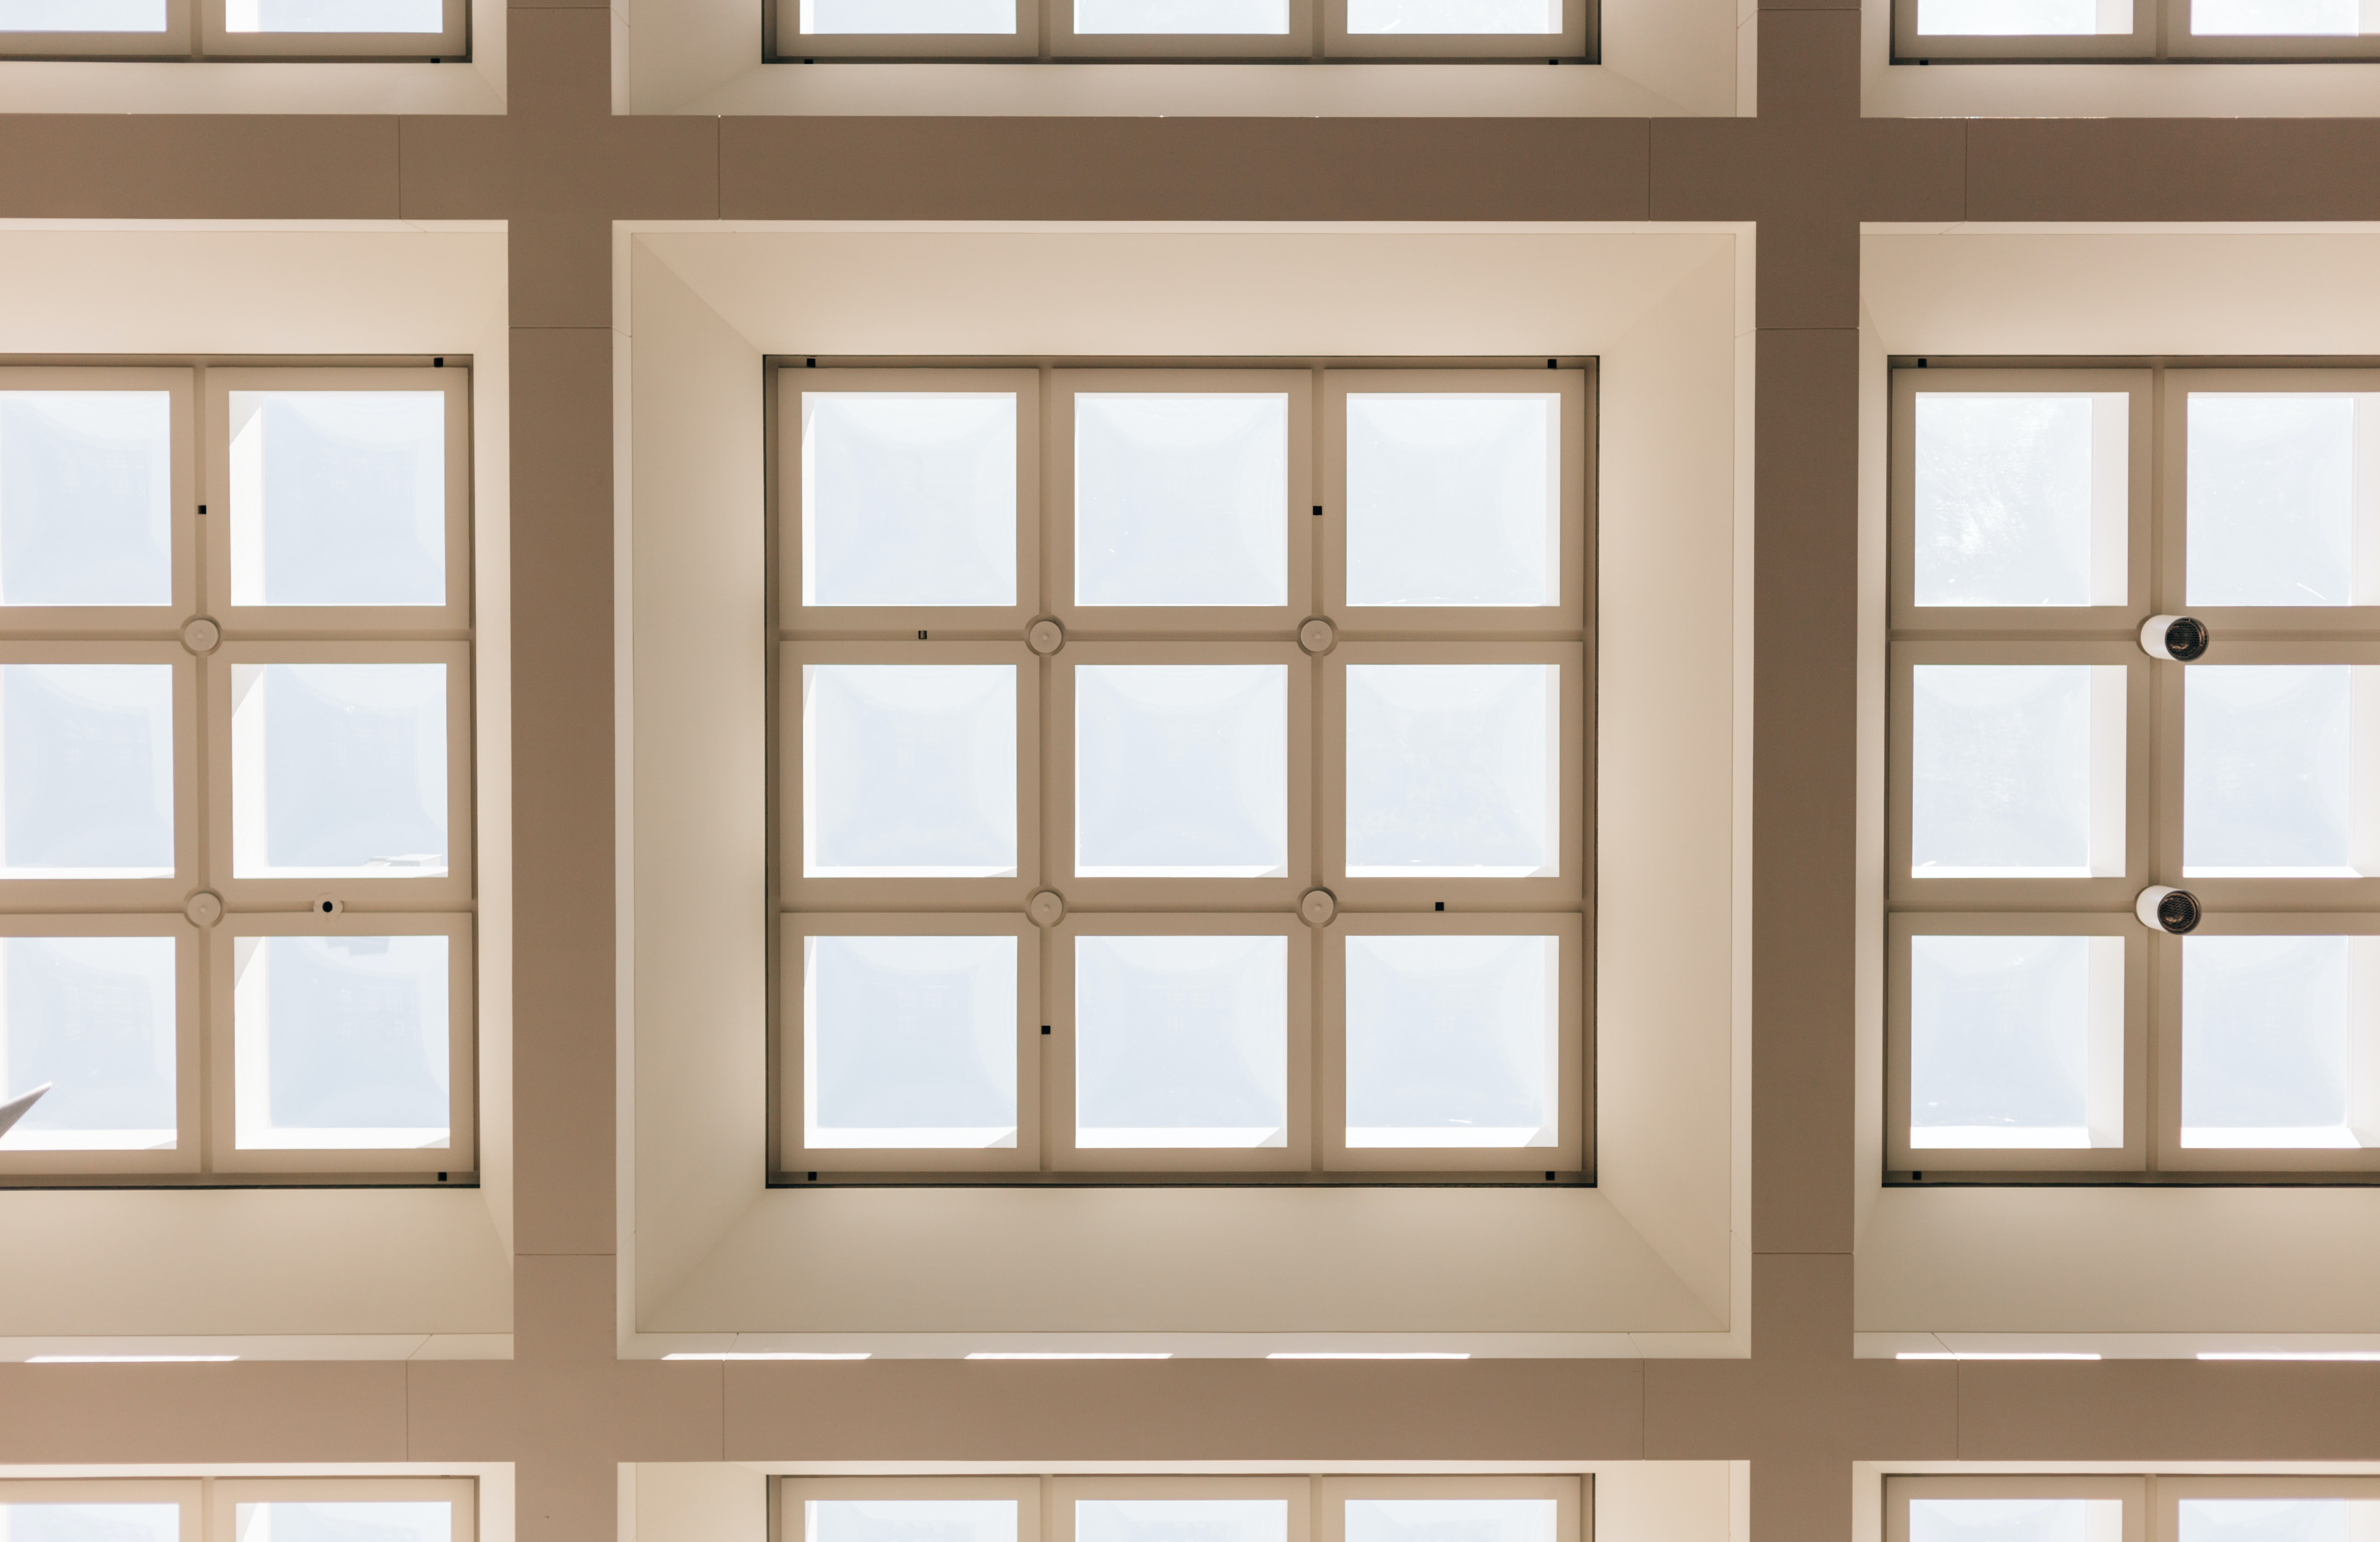 The ceiling and skylights at Hart Senate Office Building